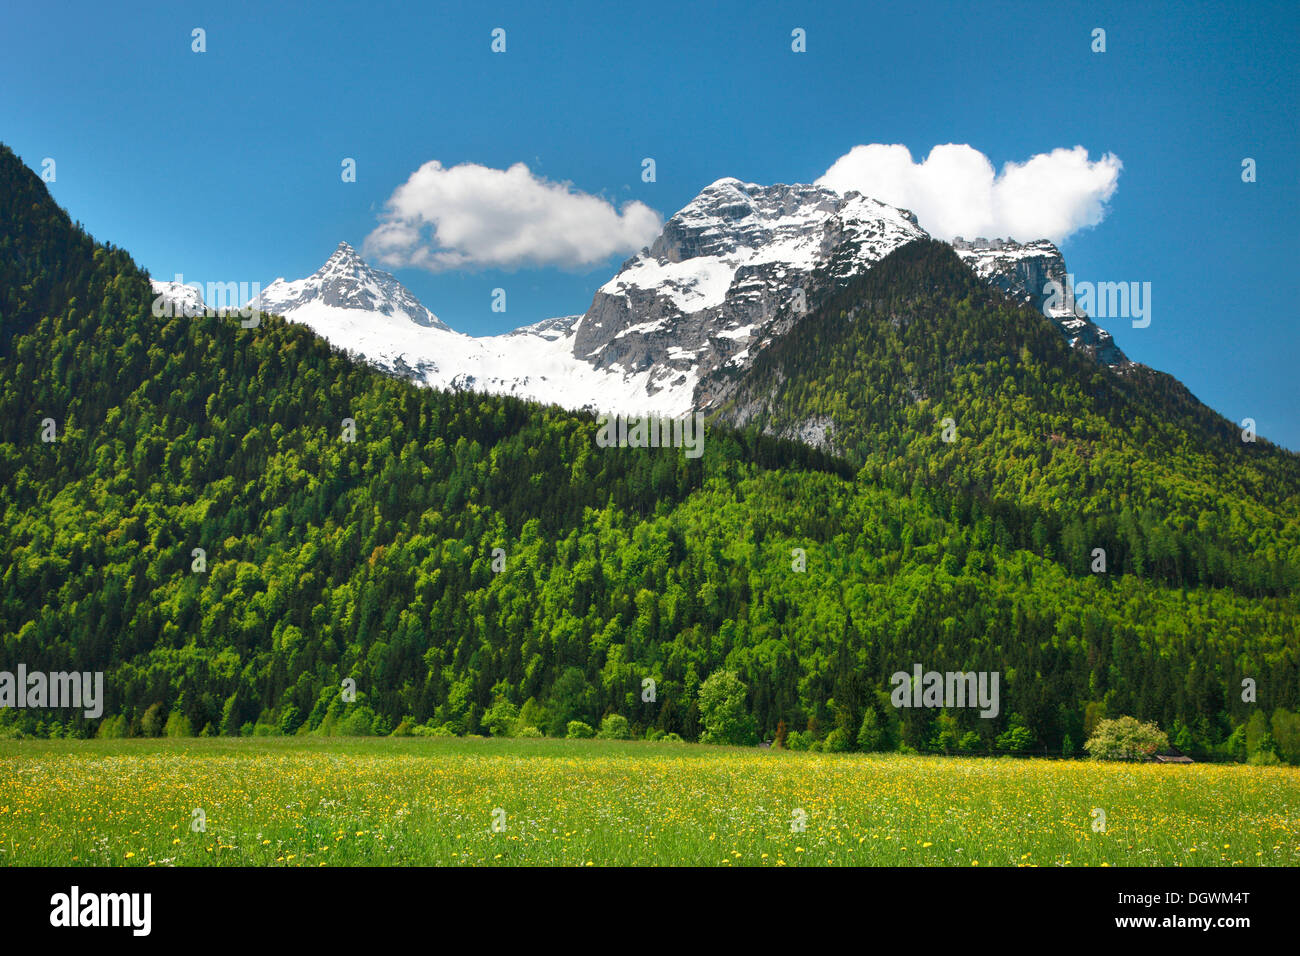 Meadow in front of Mt Reifhorn near Lofer, Lofer, Salzburger Land, Salzburg State, Austria - Stock Image